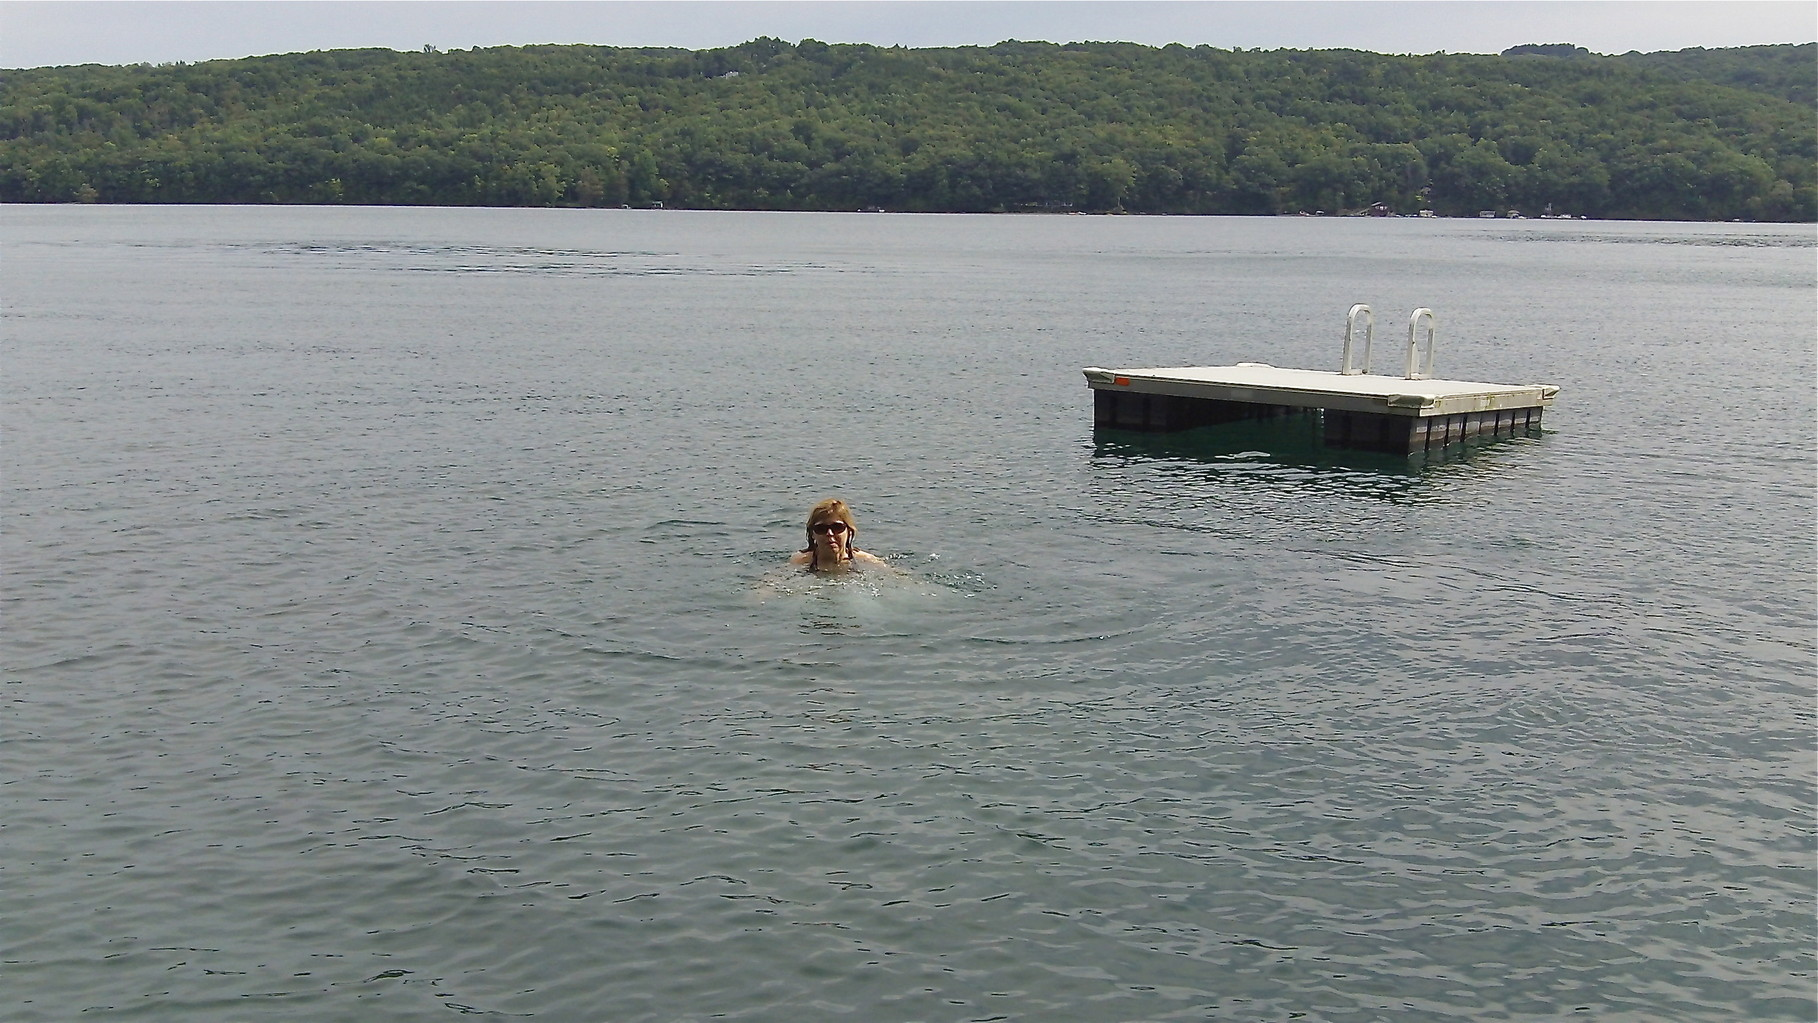 Barbara takes a refreshing dip in the lake!